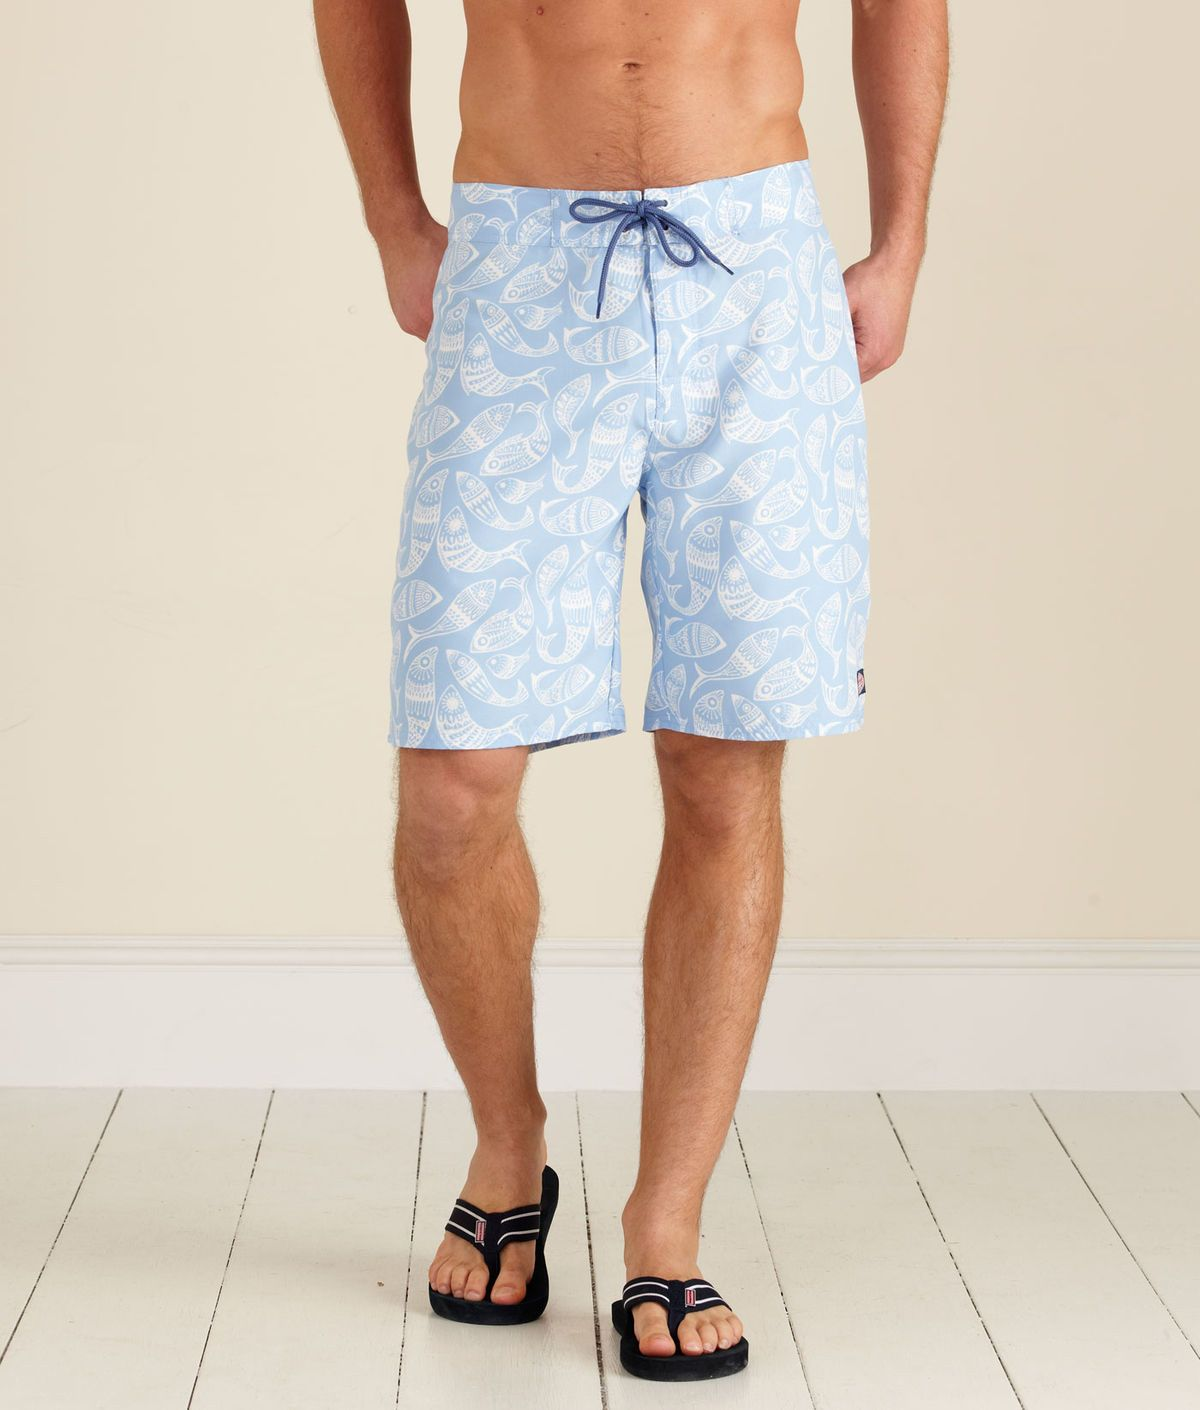 boardshorts pattern - Google 검색